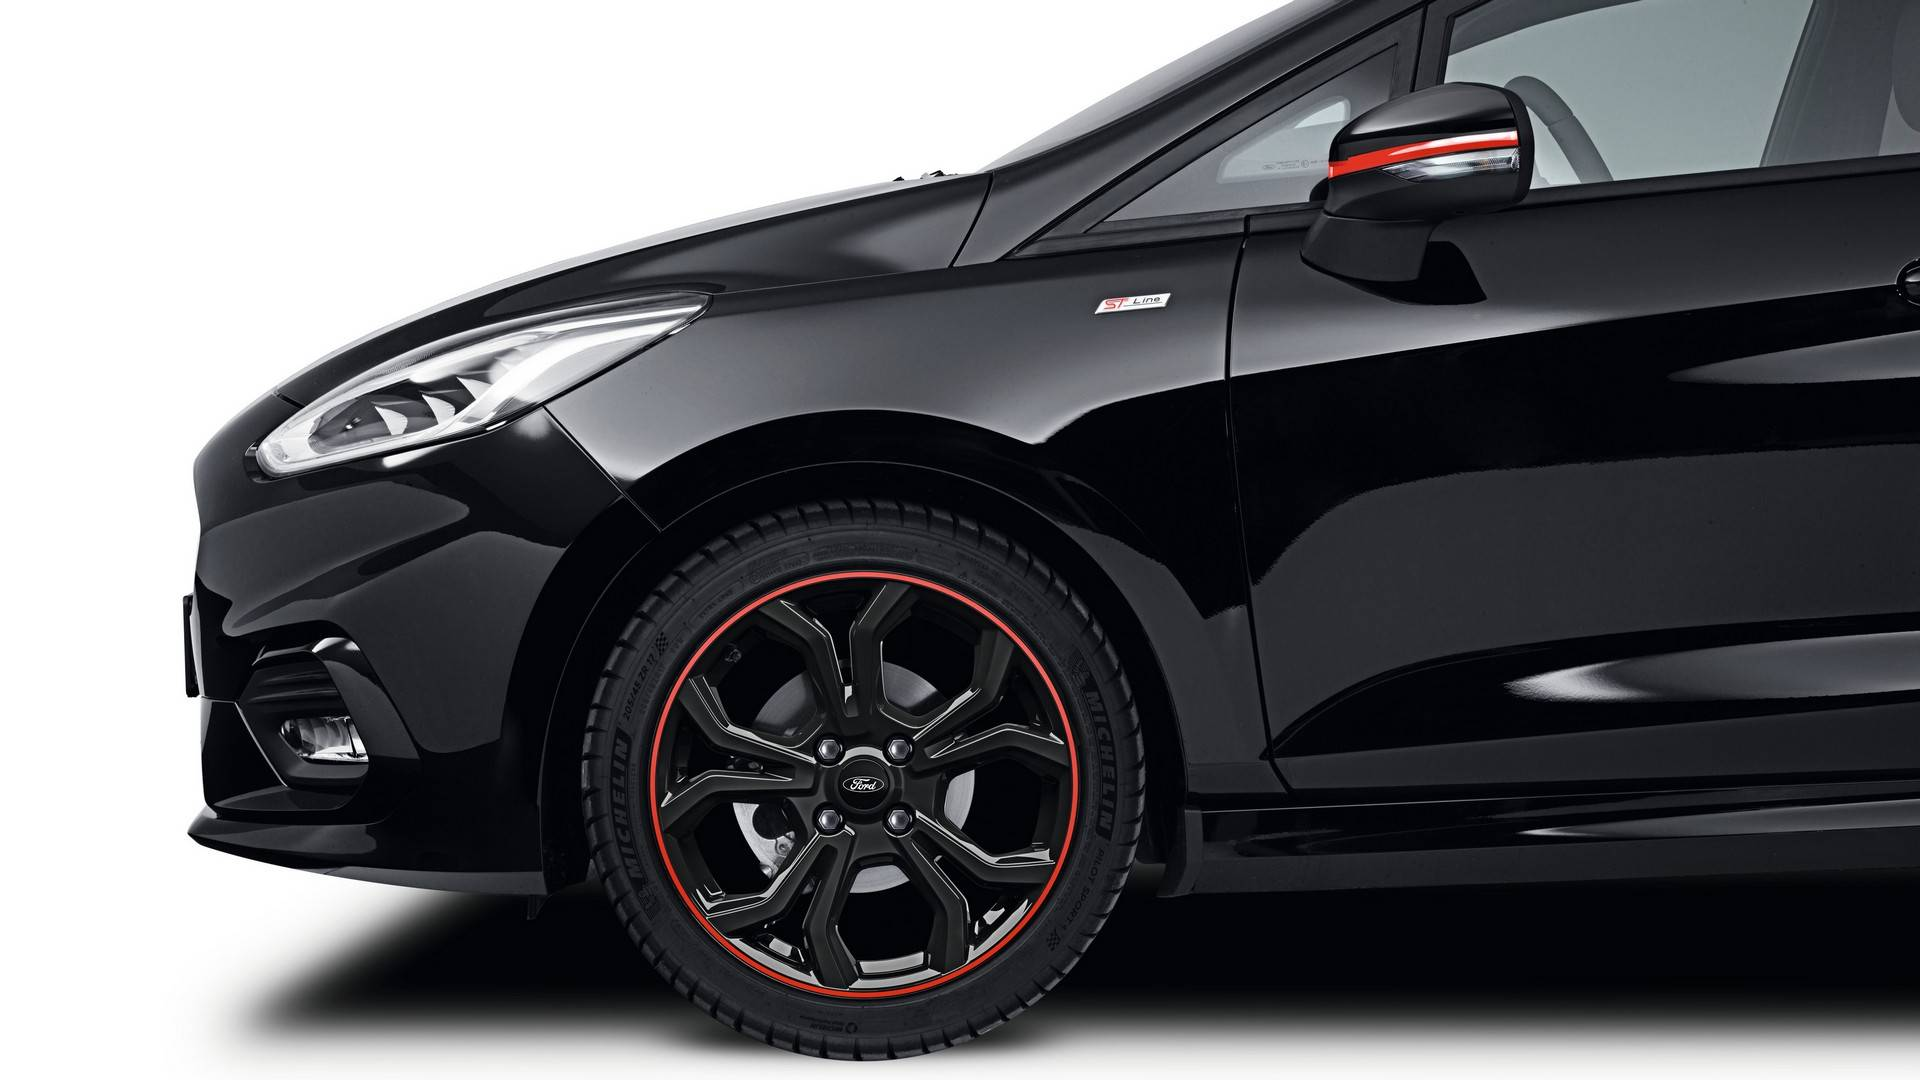 Ford Fiesta Hatchback >> Ford Launches Fiesta ST-Line Red Edition, Joined By Black Edition - autoevolution